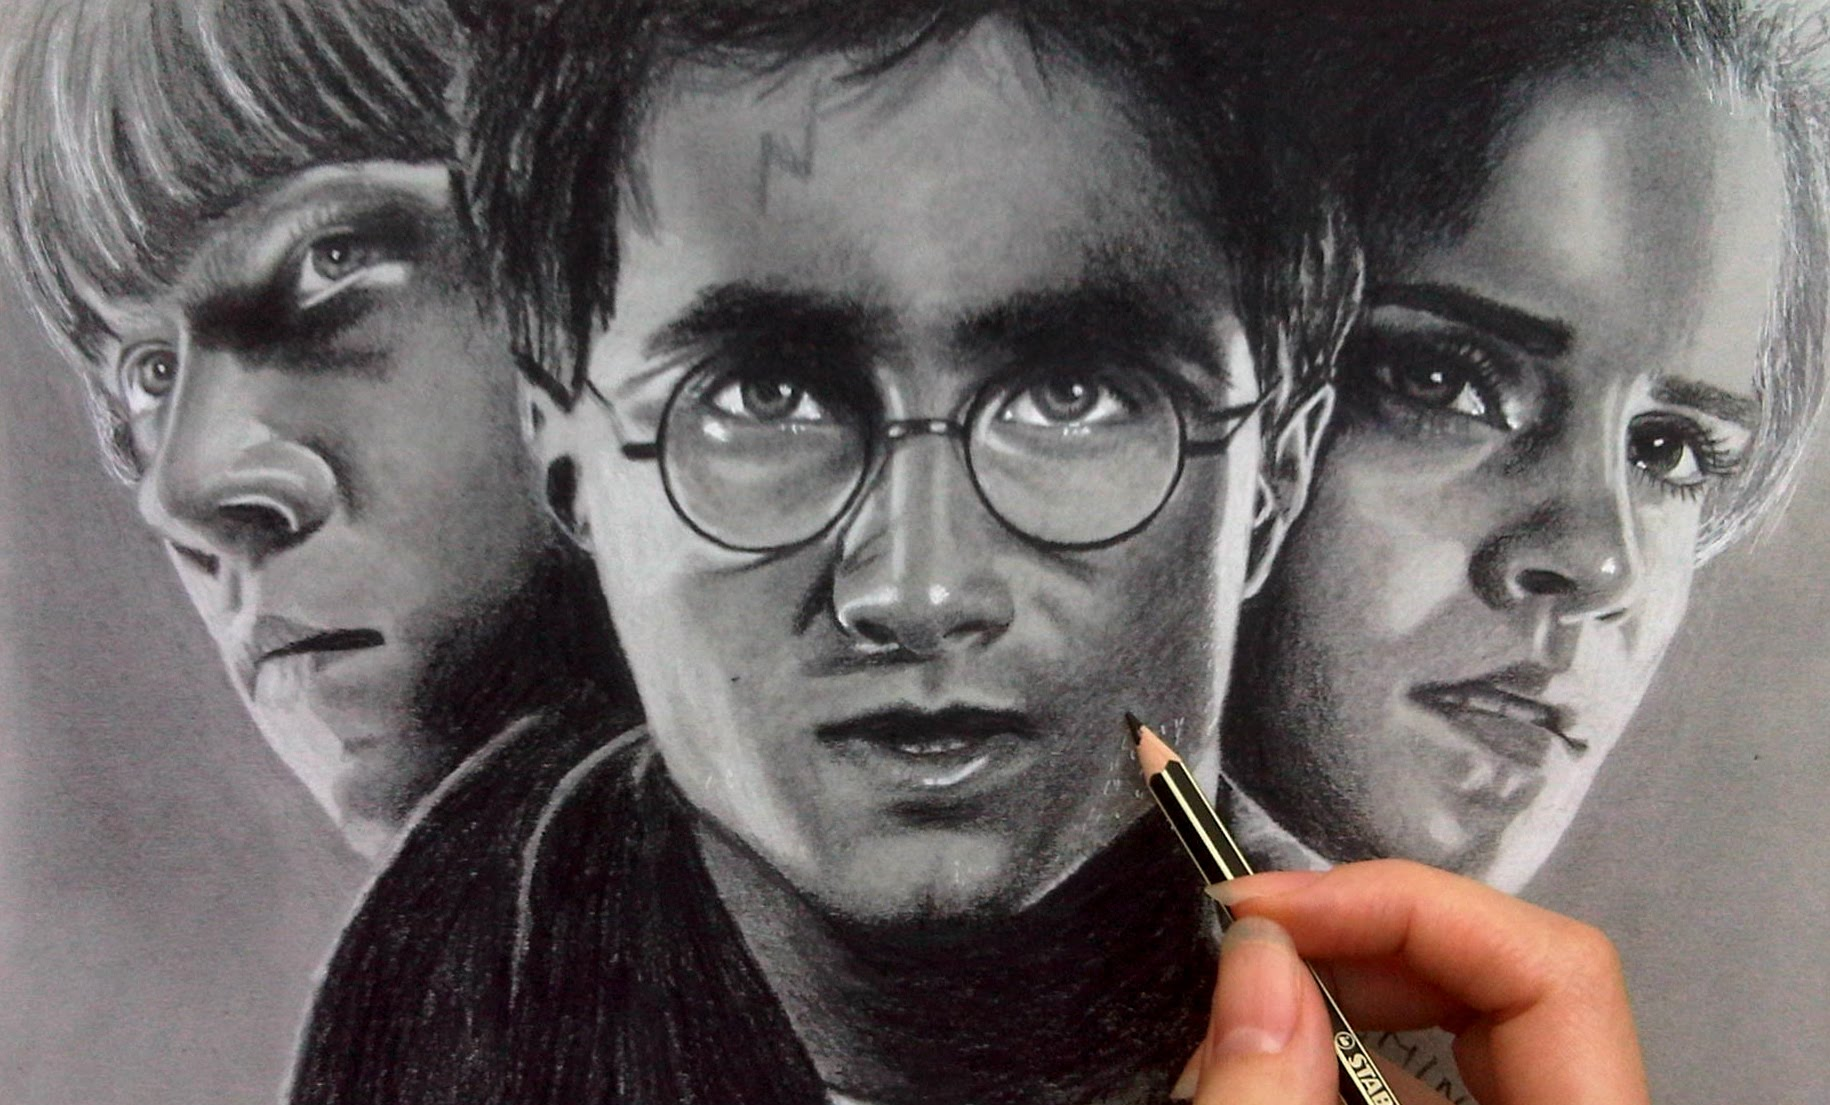 Drawn poster harry potter  drawing Harry poster of